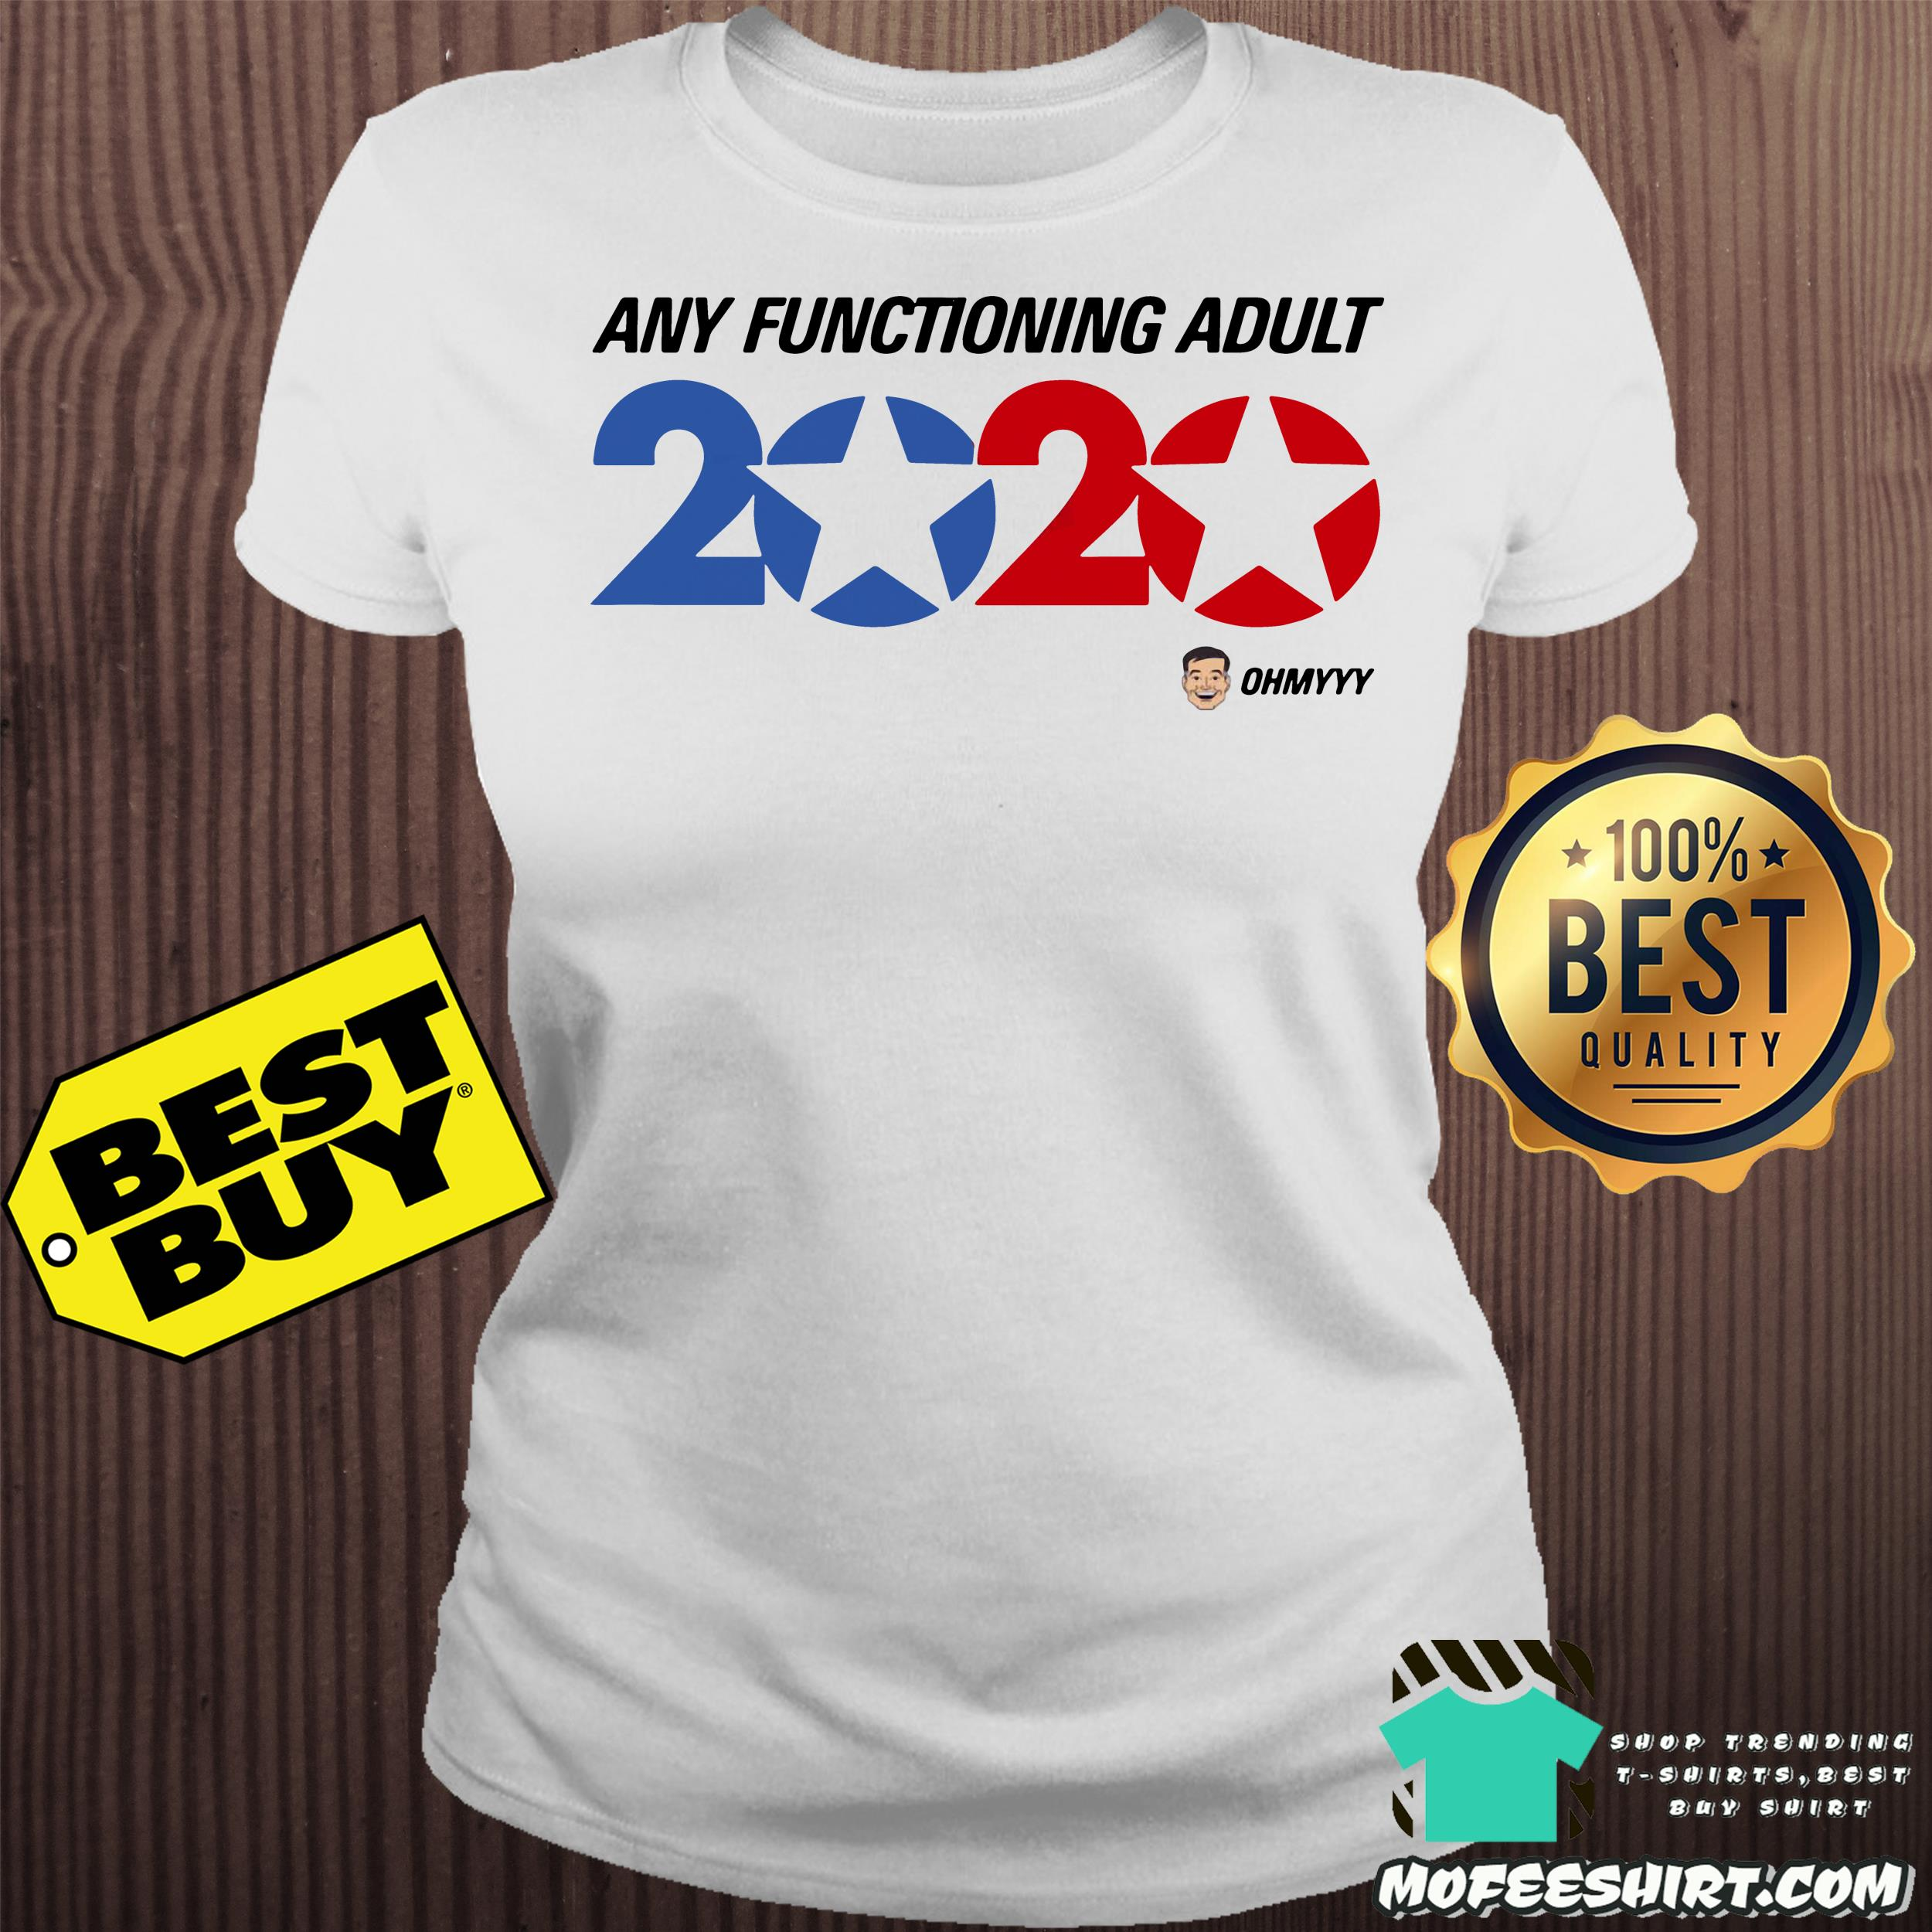 america trump 2020 george takei any functioning adult ladies tee - America Trump 2020 George Takei Any functioning adult shirt